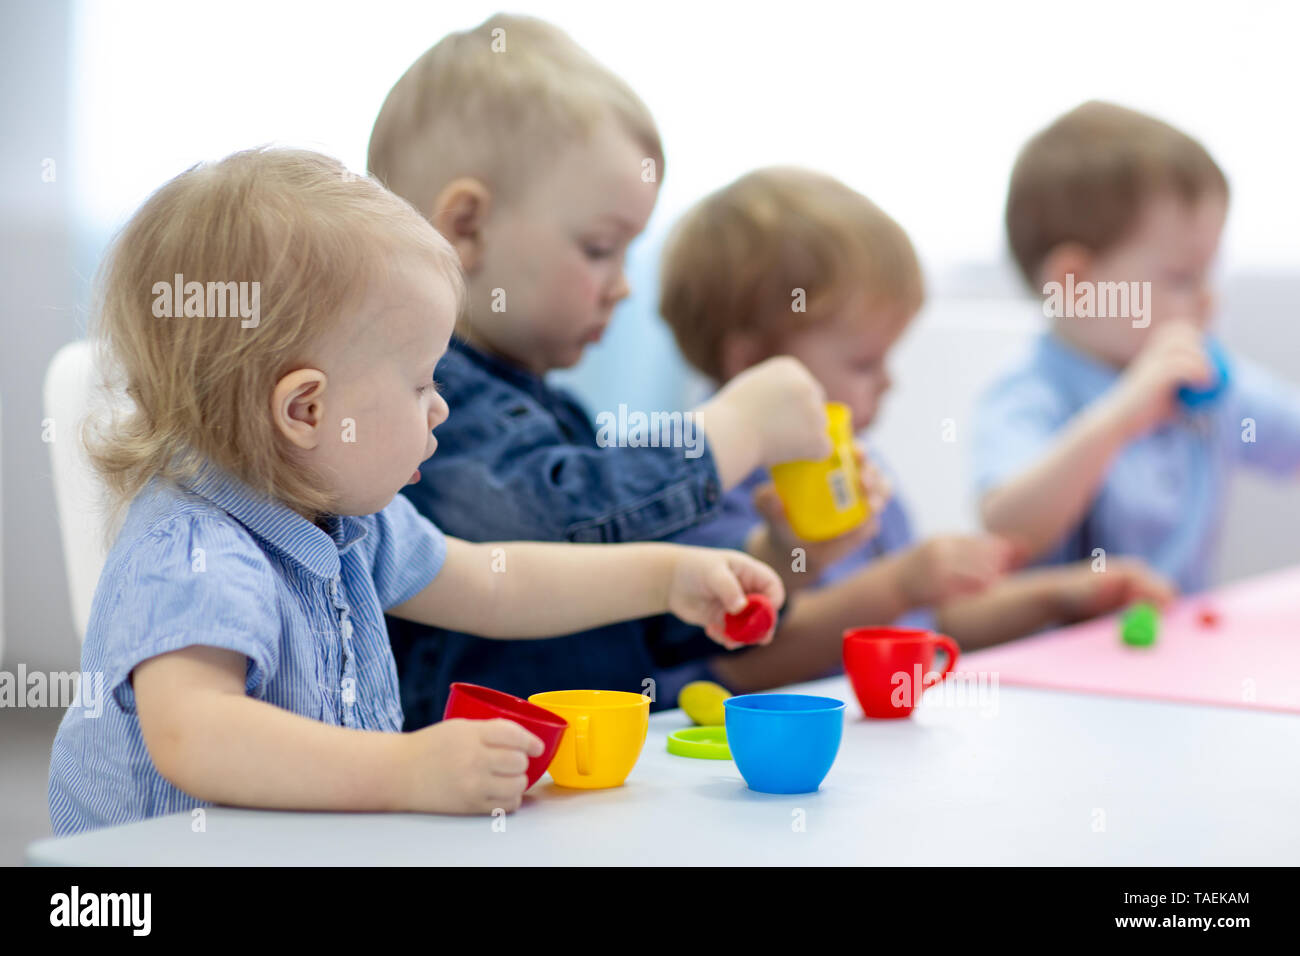 babies group learning arts and crafts in playroom with interest - Stock Image